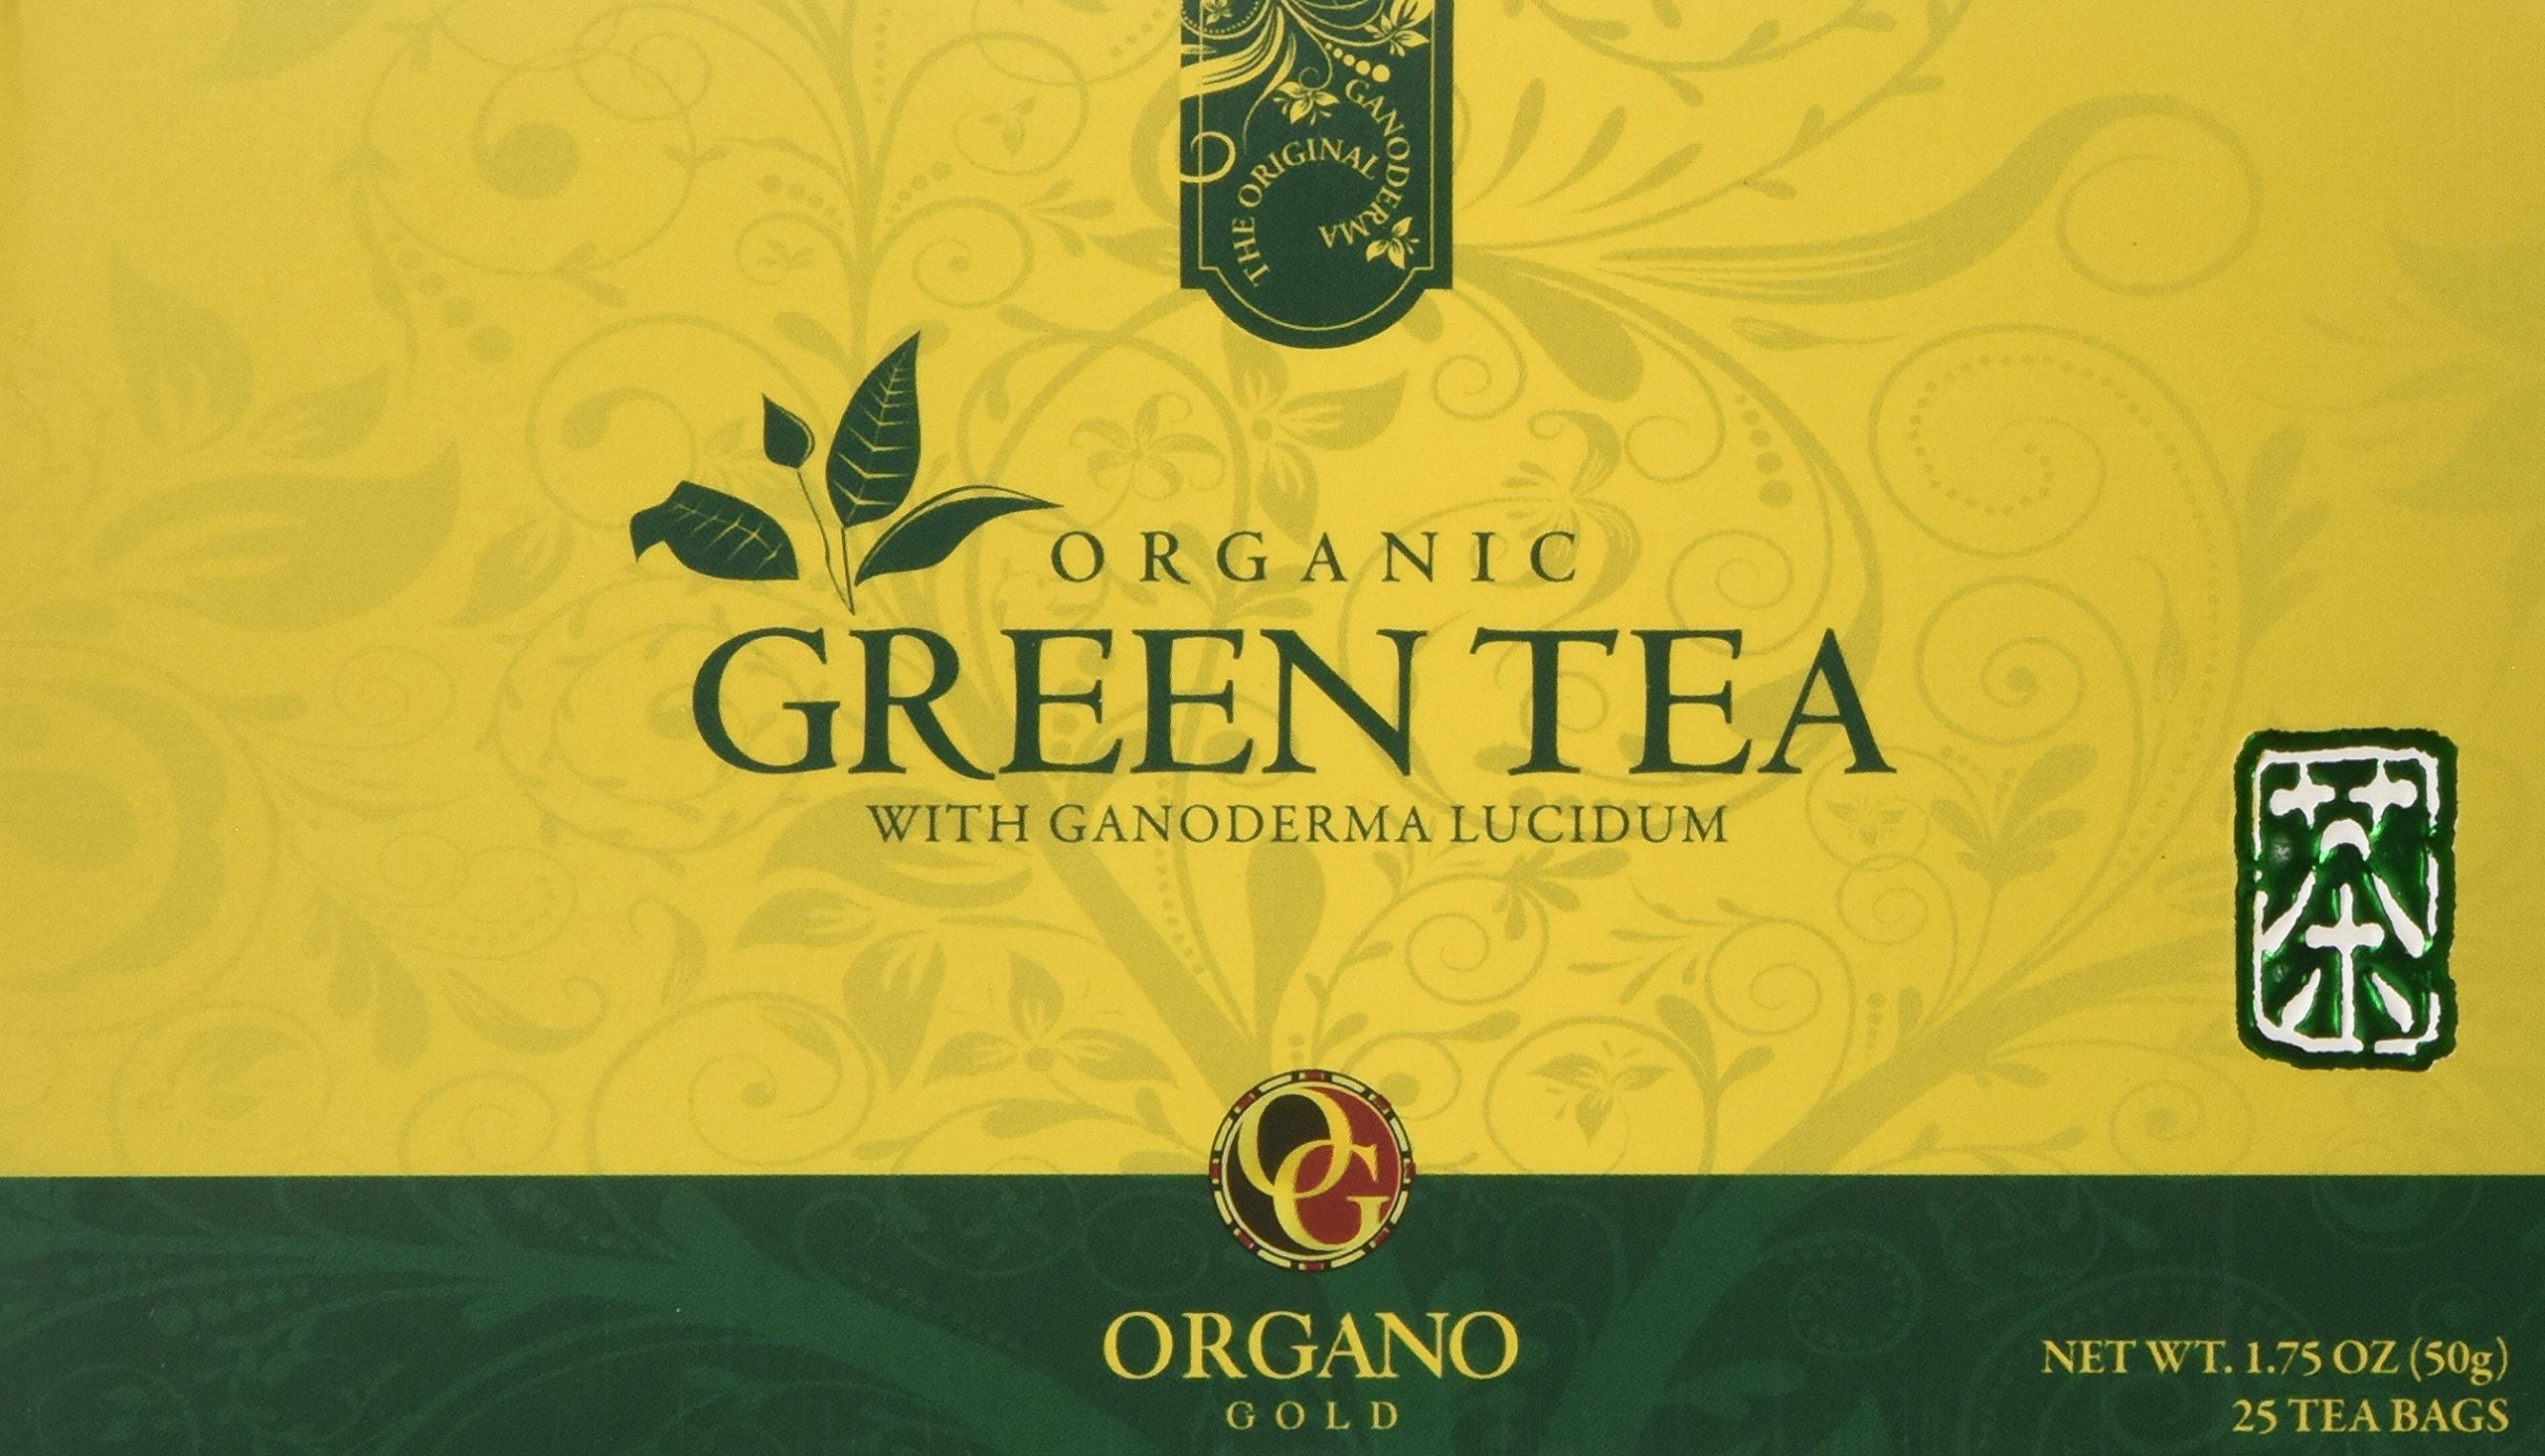 Organo Gold Green Tea with Ganoderma Lucidum (1 Box of 25 Sachets)